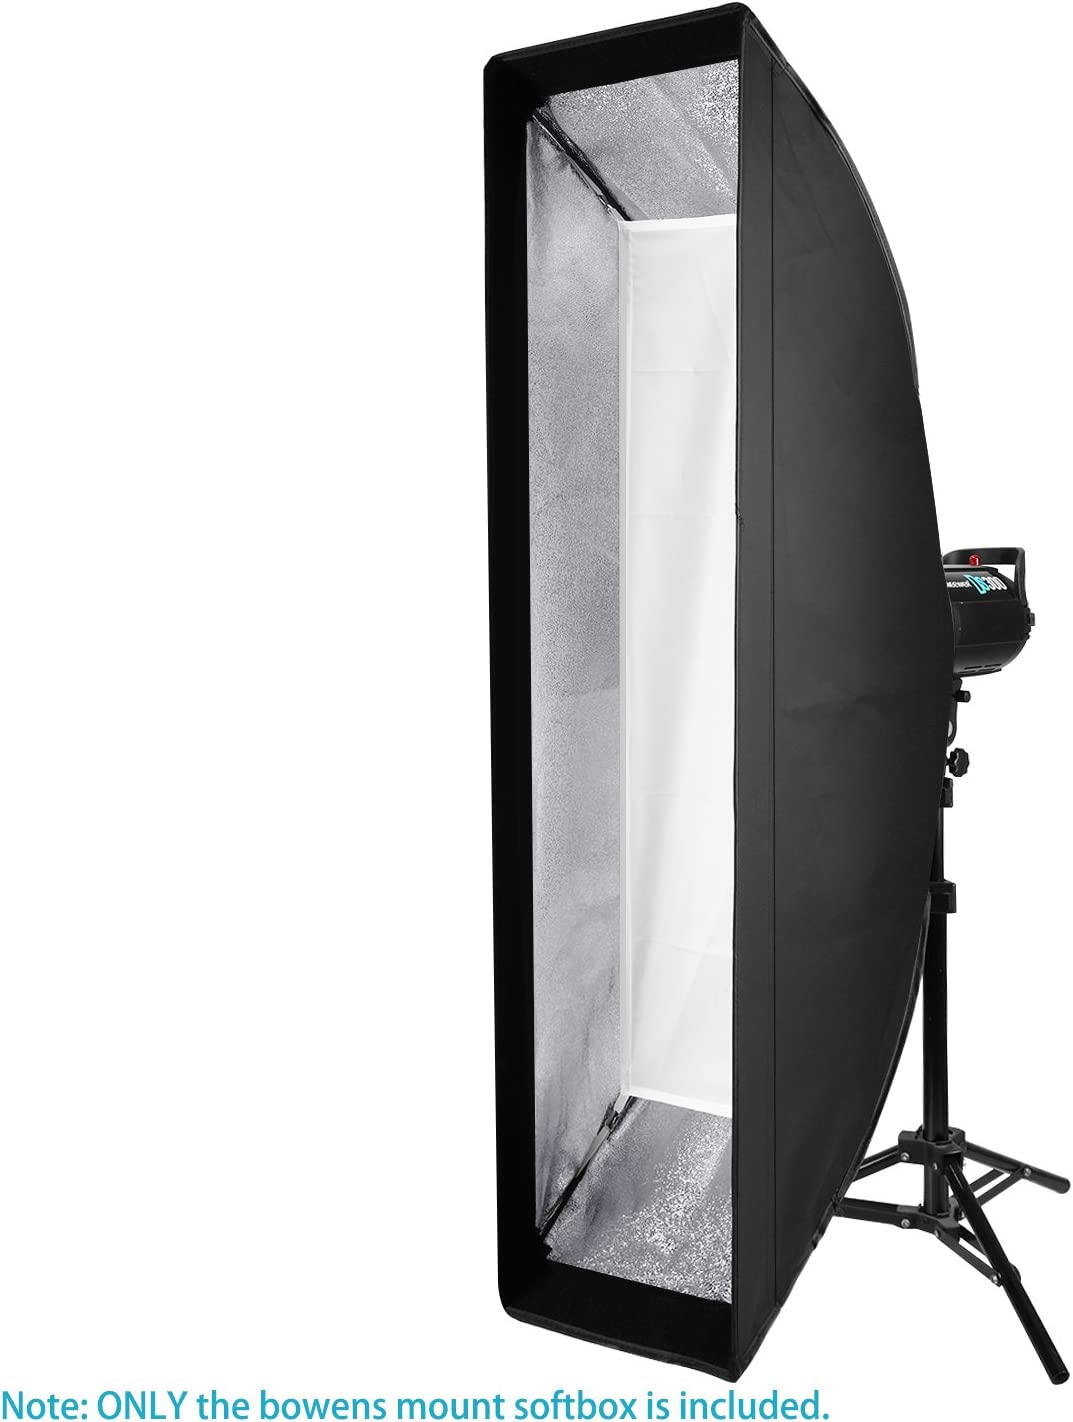 Neewer 14 x 63 inches//35 x 160 centimeters Rectangular Softbox with Bowens Mount Speedring,Soft Diffuser and Bag for Speedlite Studio Flash Monolight,Portrait and Product Photography